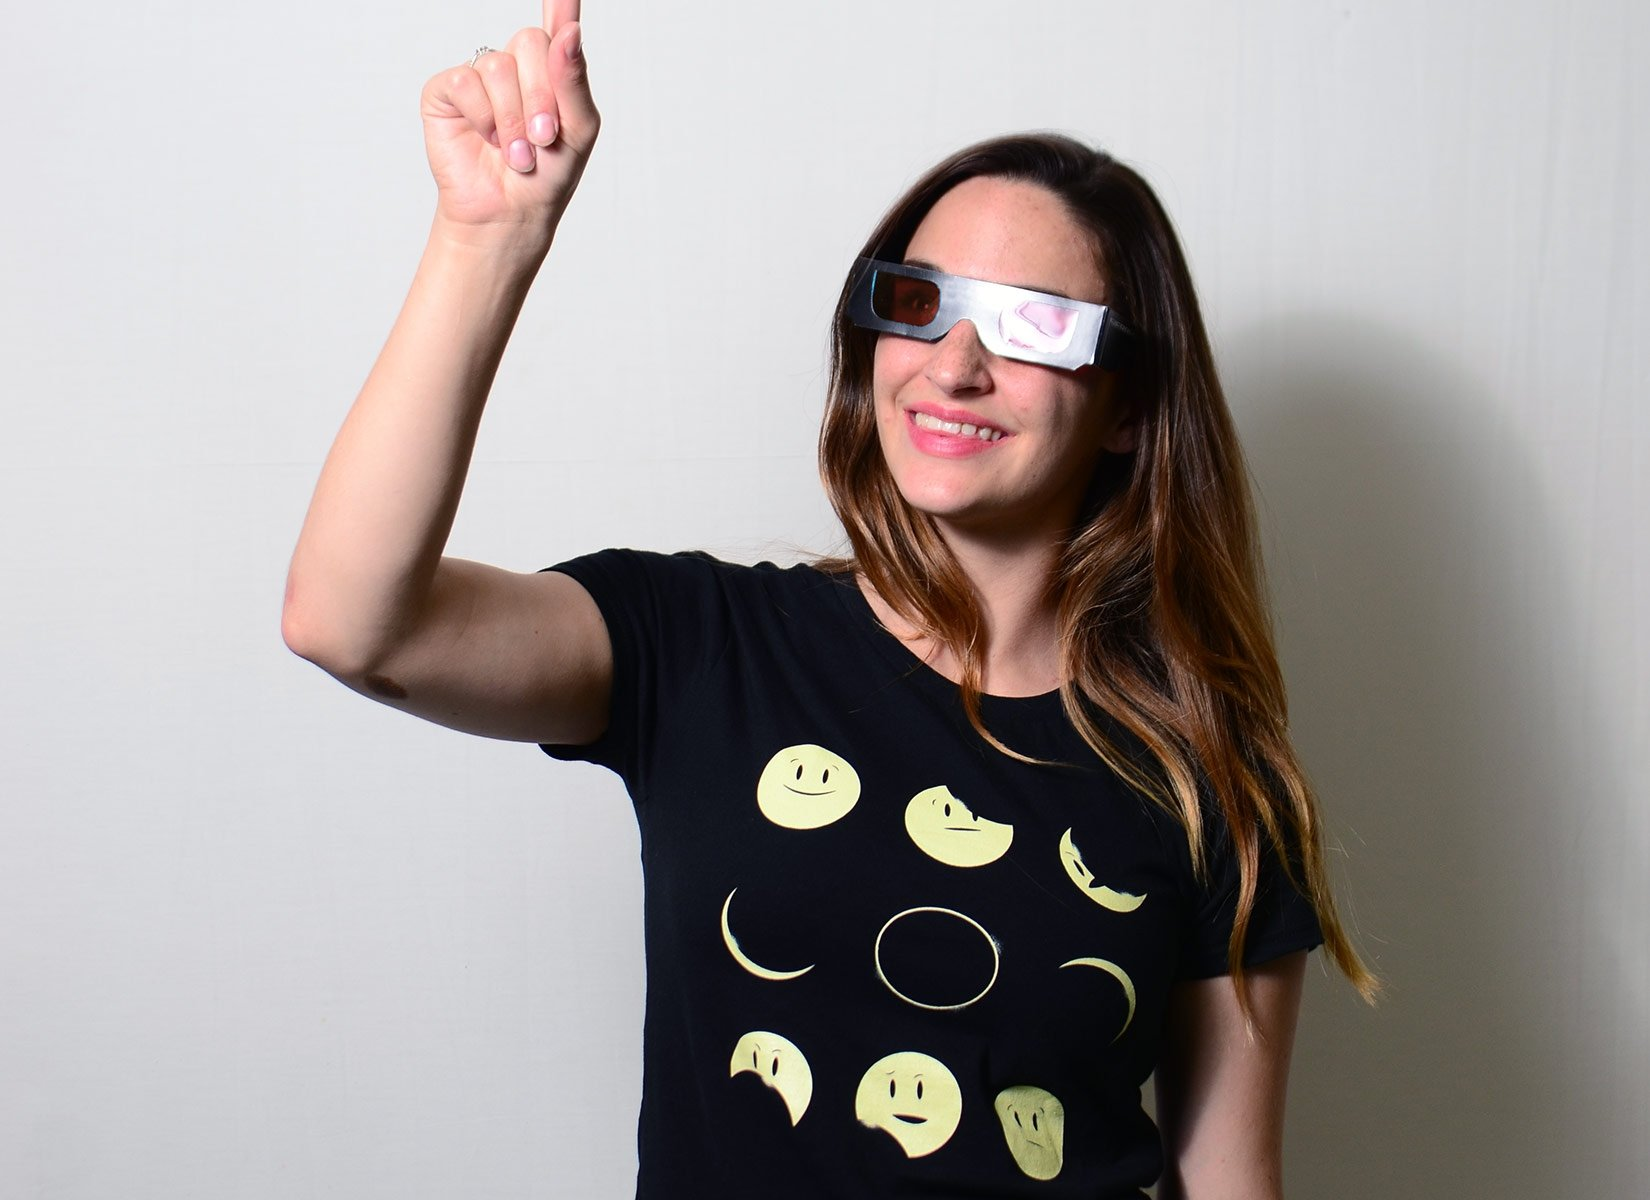 Eclipse Emoji on Womens T-Shirt